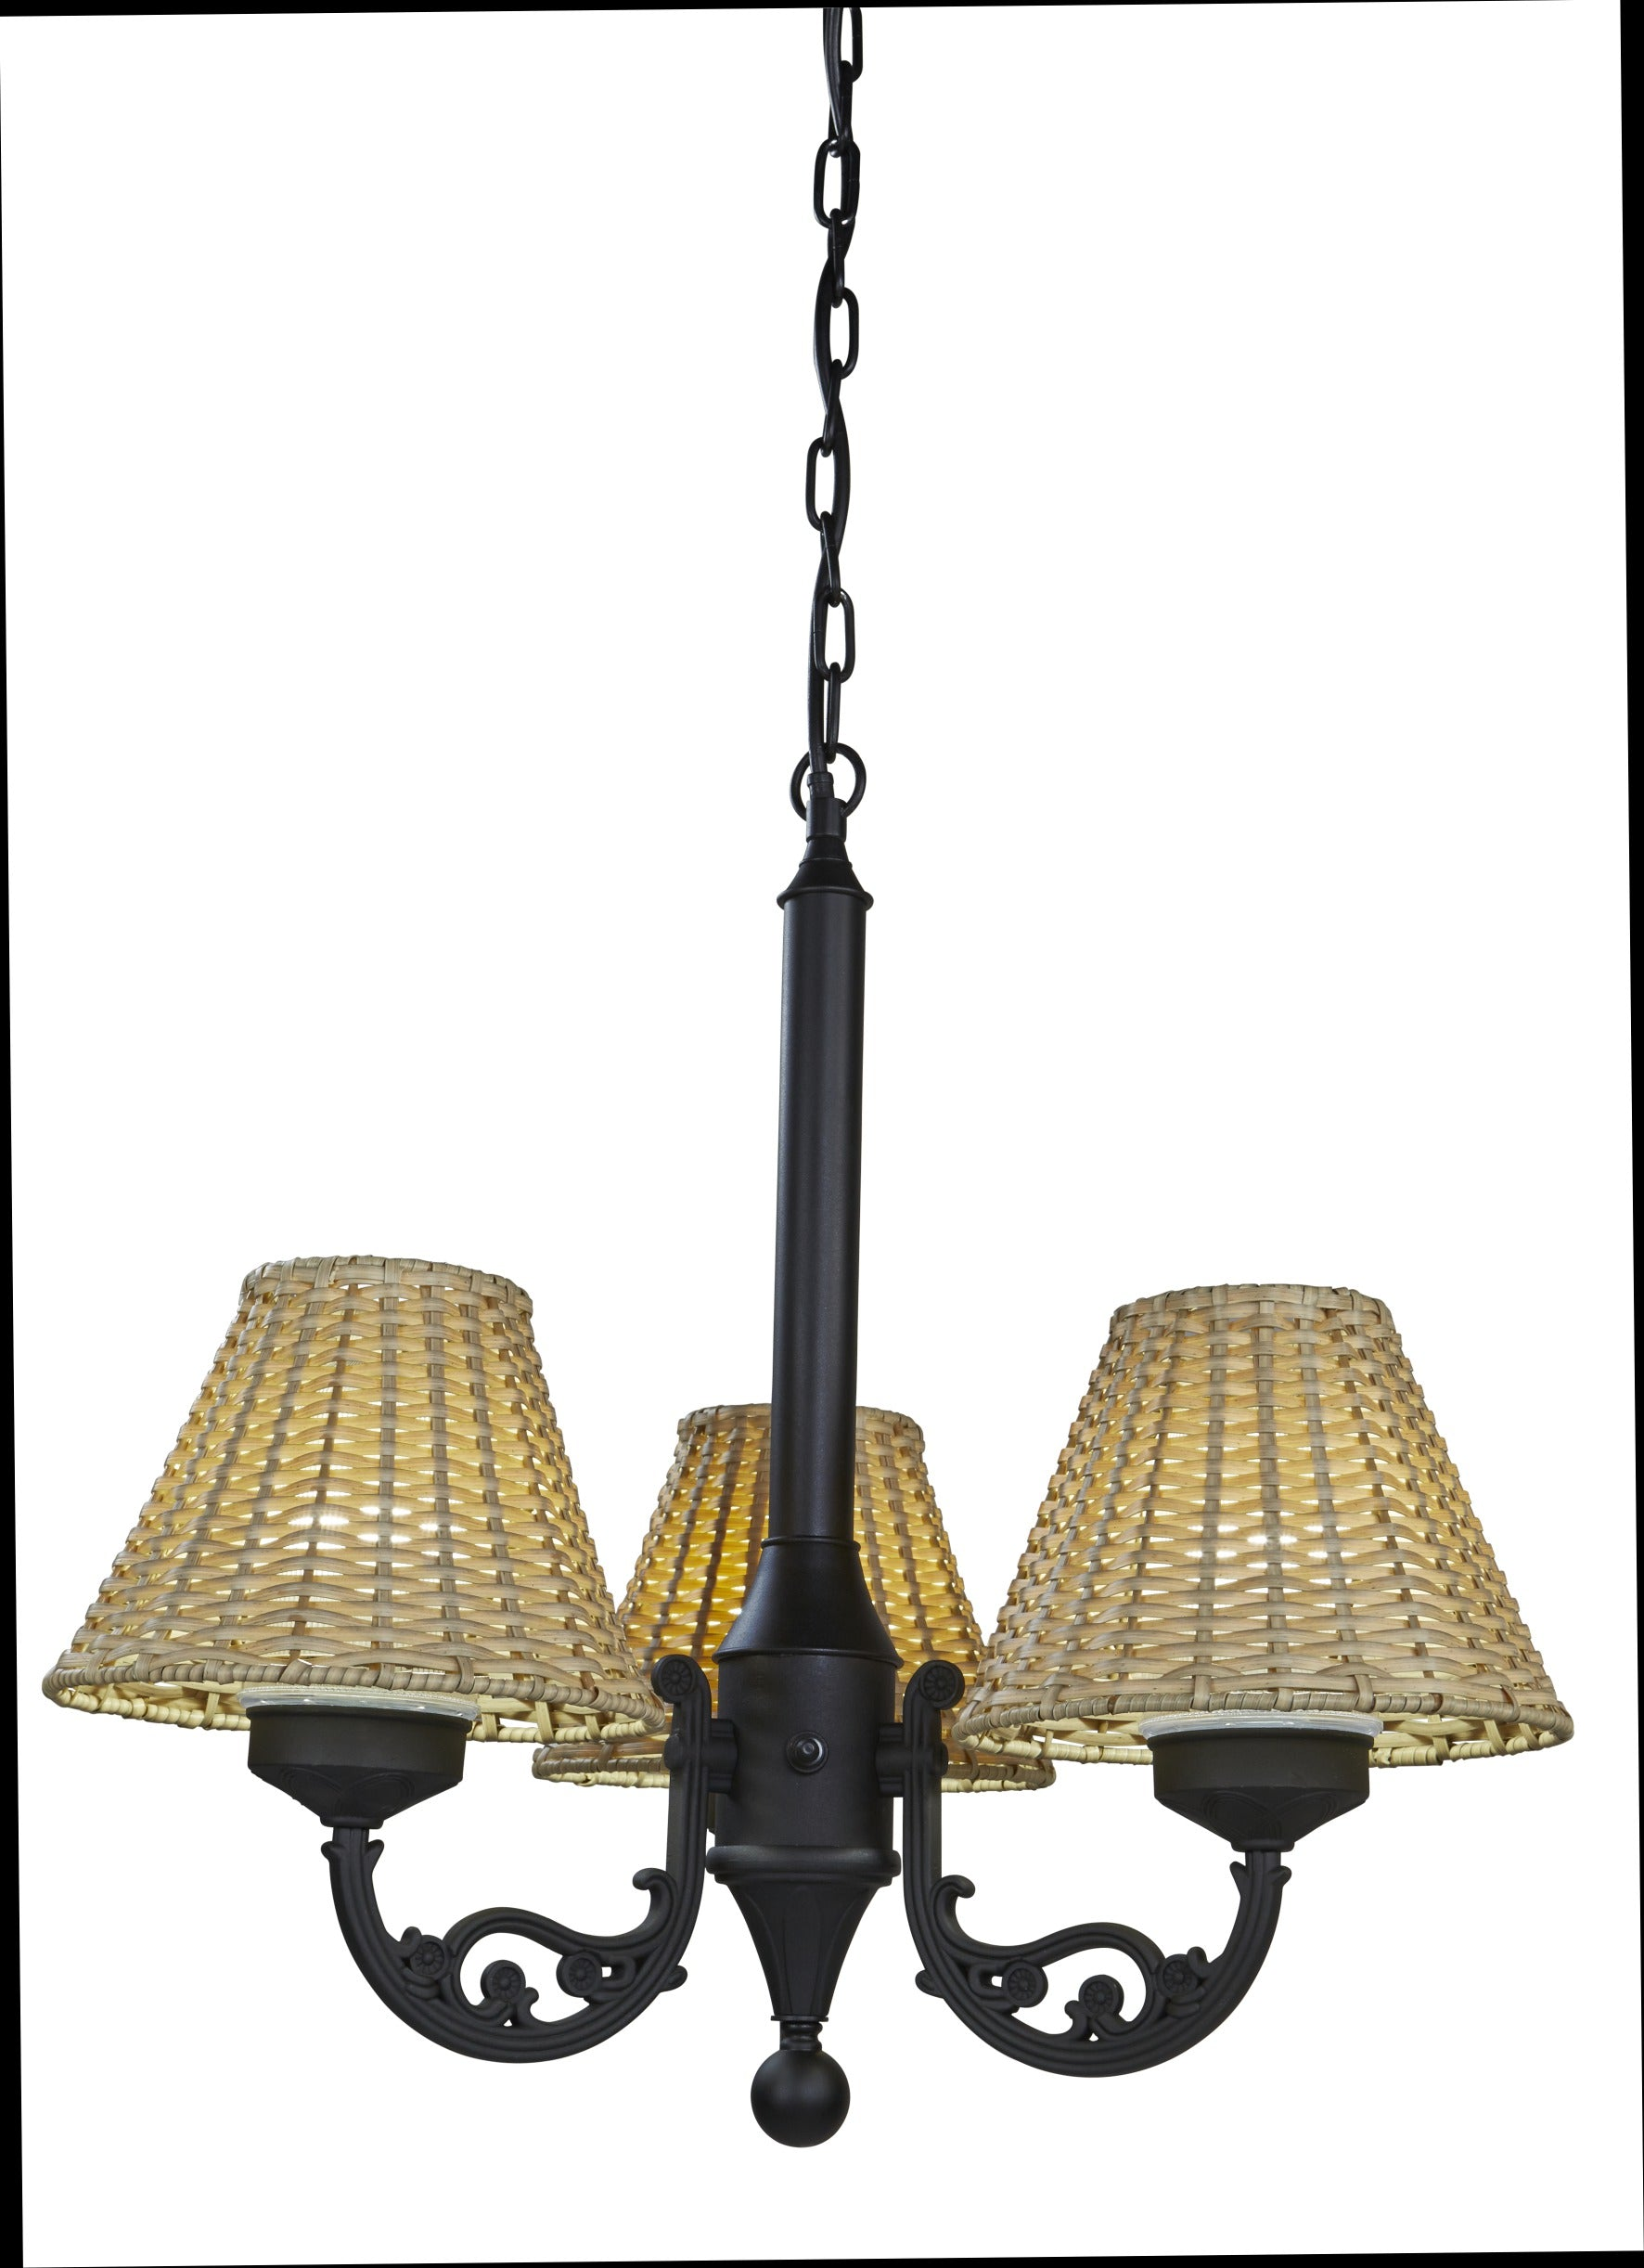 Versailles Chandelier 19750 with Black Body and Stone Wicker Shades